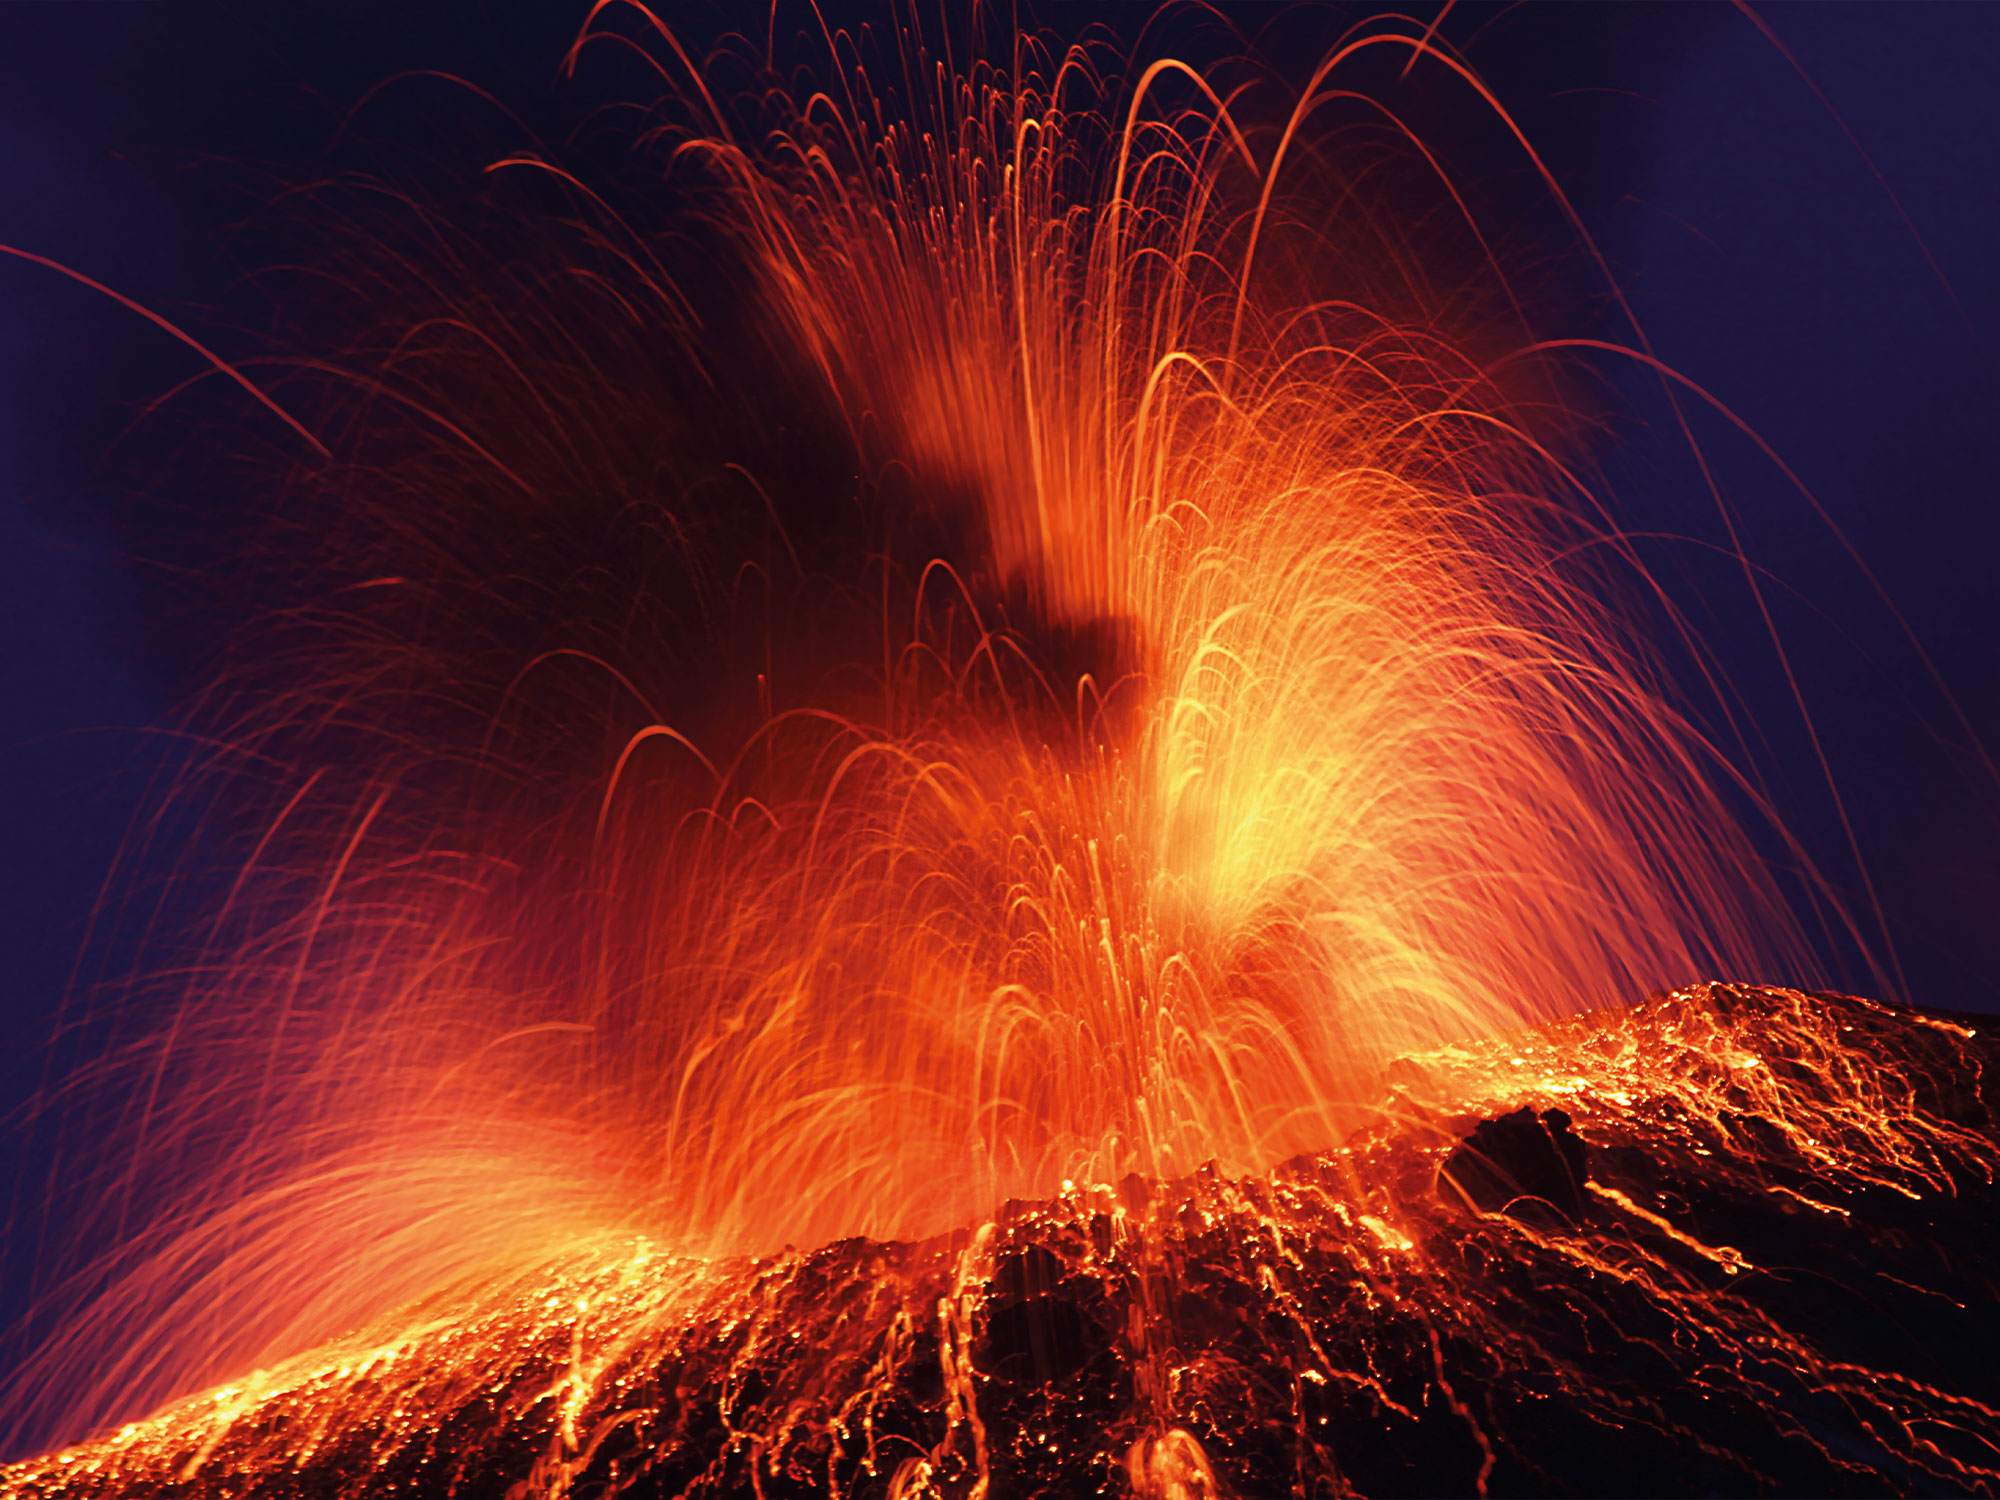 Diamonds and Volcano eruptions.